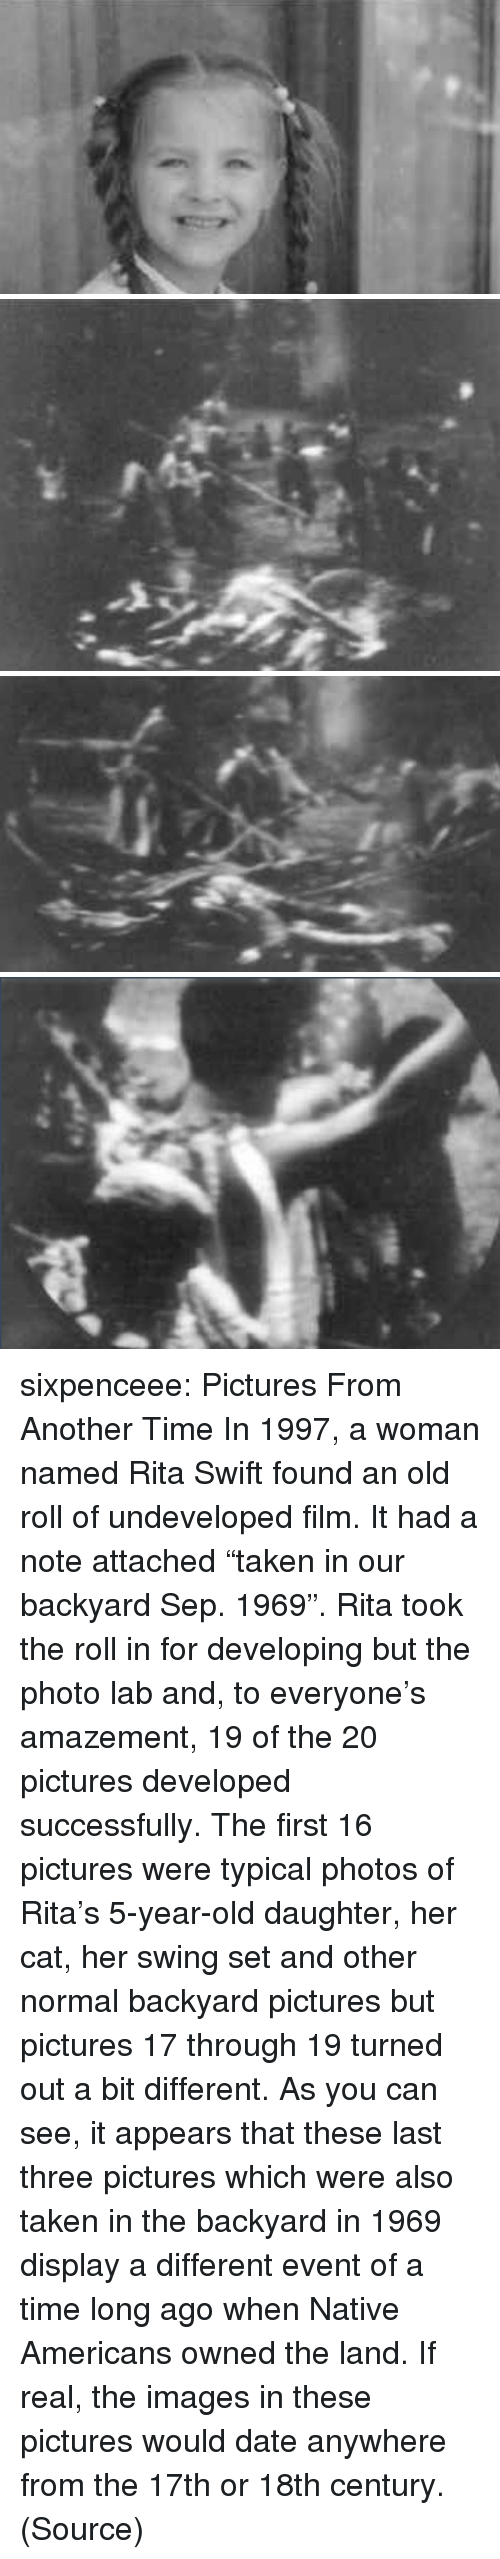 """18Th Century: sixpenceee: Pictures From Another Time In 1997, a woman named Rita Swift found an old roll of undeveloped film. It had a note attached """"taken in our backyard Sep. 1969"""". Rita took the roll in for developing but the photo lab and, to everyone's amazement, 19 of the 20 pictures developed successfully. The first 16 pictures were typical photos of Rita's 5-year-old daughter, her cat, her swing set and other normal backyard pictures but pictures 17 through 19 turned out a bit different. As you can see, it appears that these last three pictures which were also taken in the backyard in 1969 display a different event of a time long ago when Native Americans owned the land. If real, the images in these pictures would date anywhere from the 17th or 18th century. (Source)"""